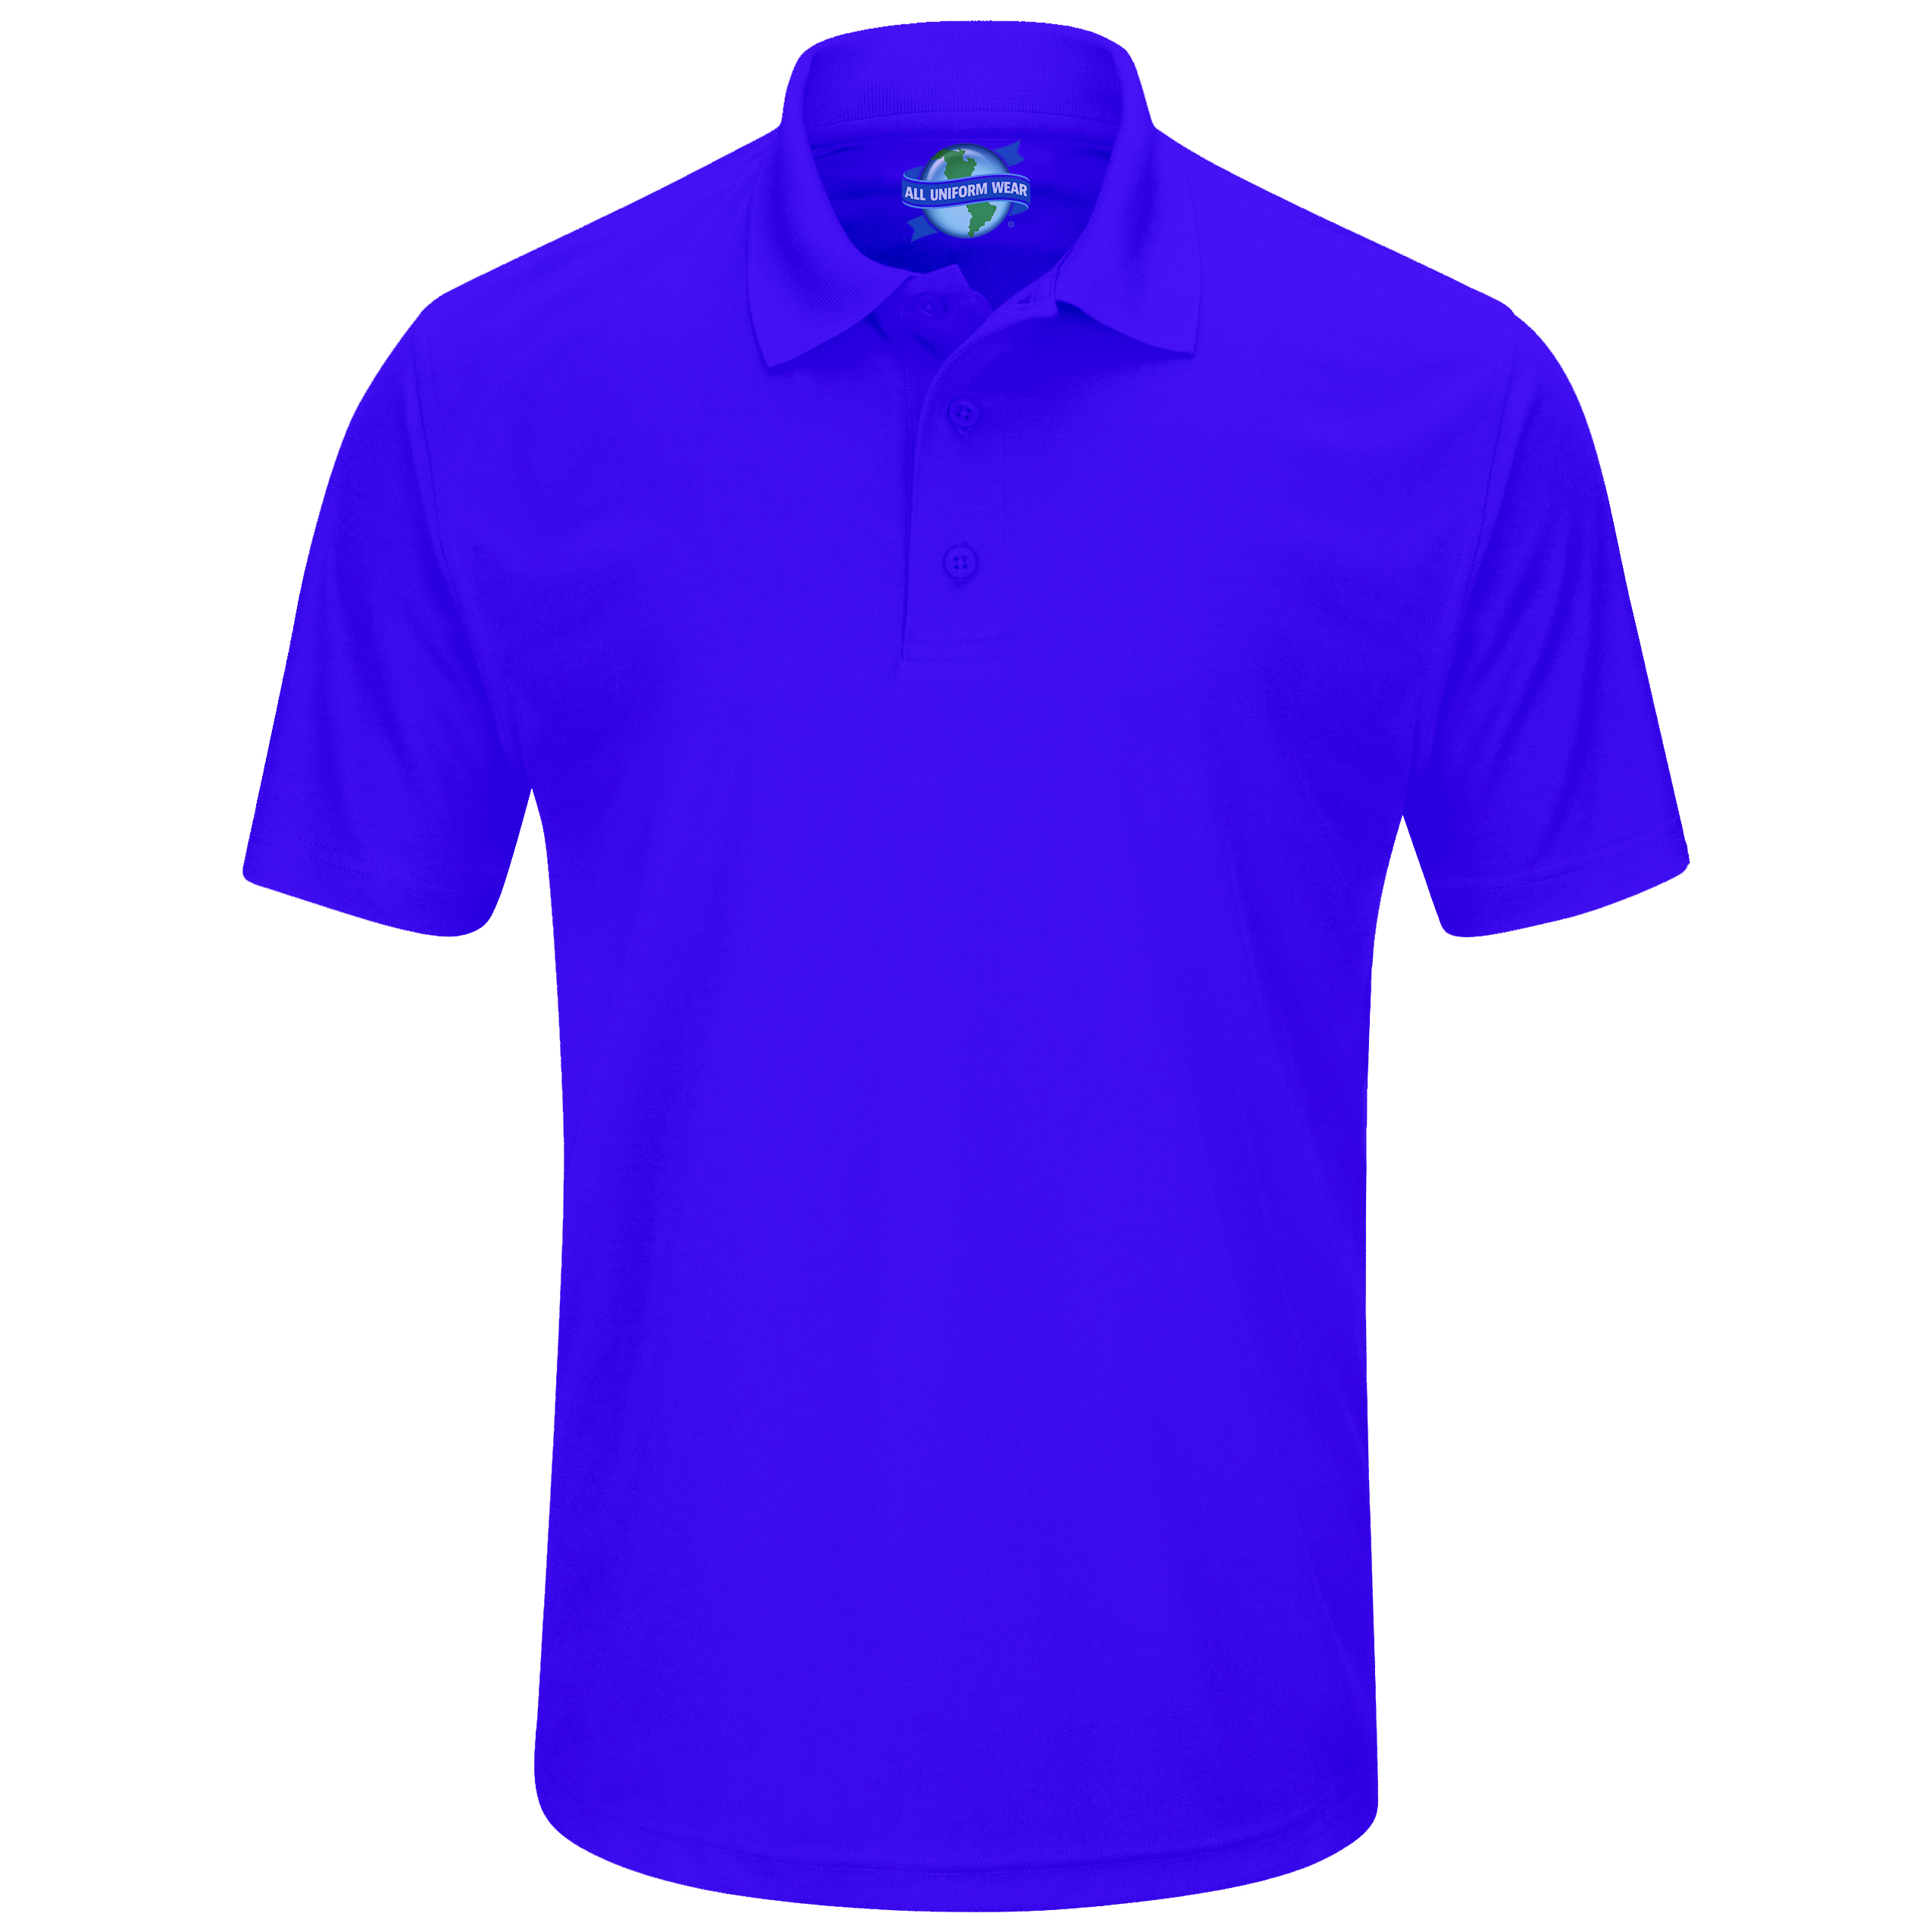 AUW Universal Short Sleeve Pique Polo-All Uniform Wear